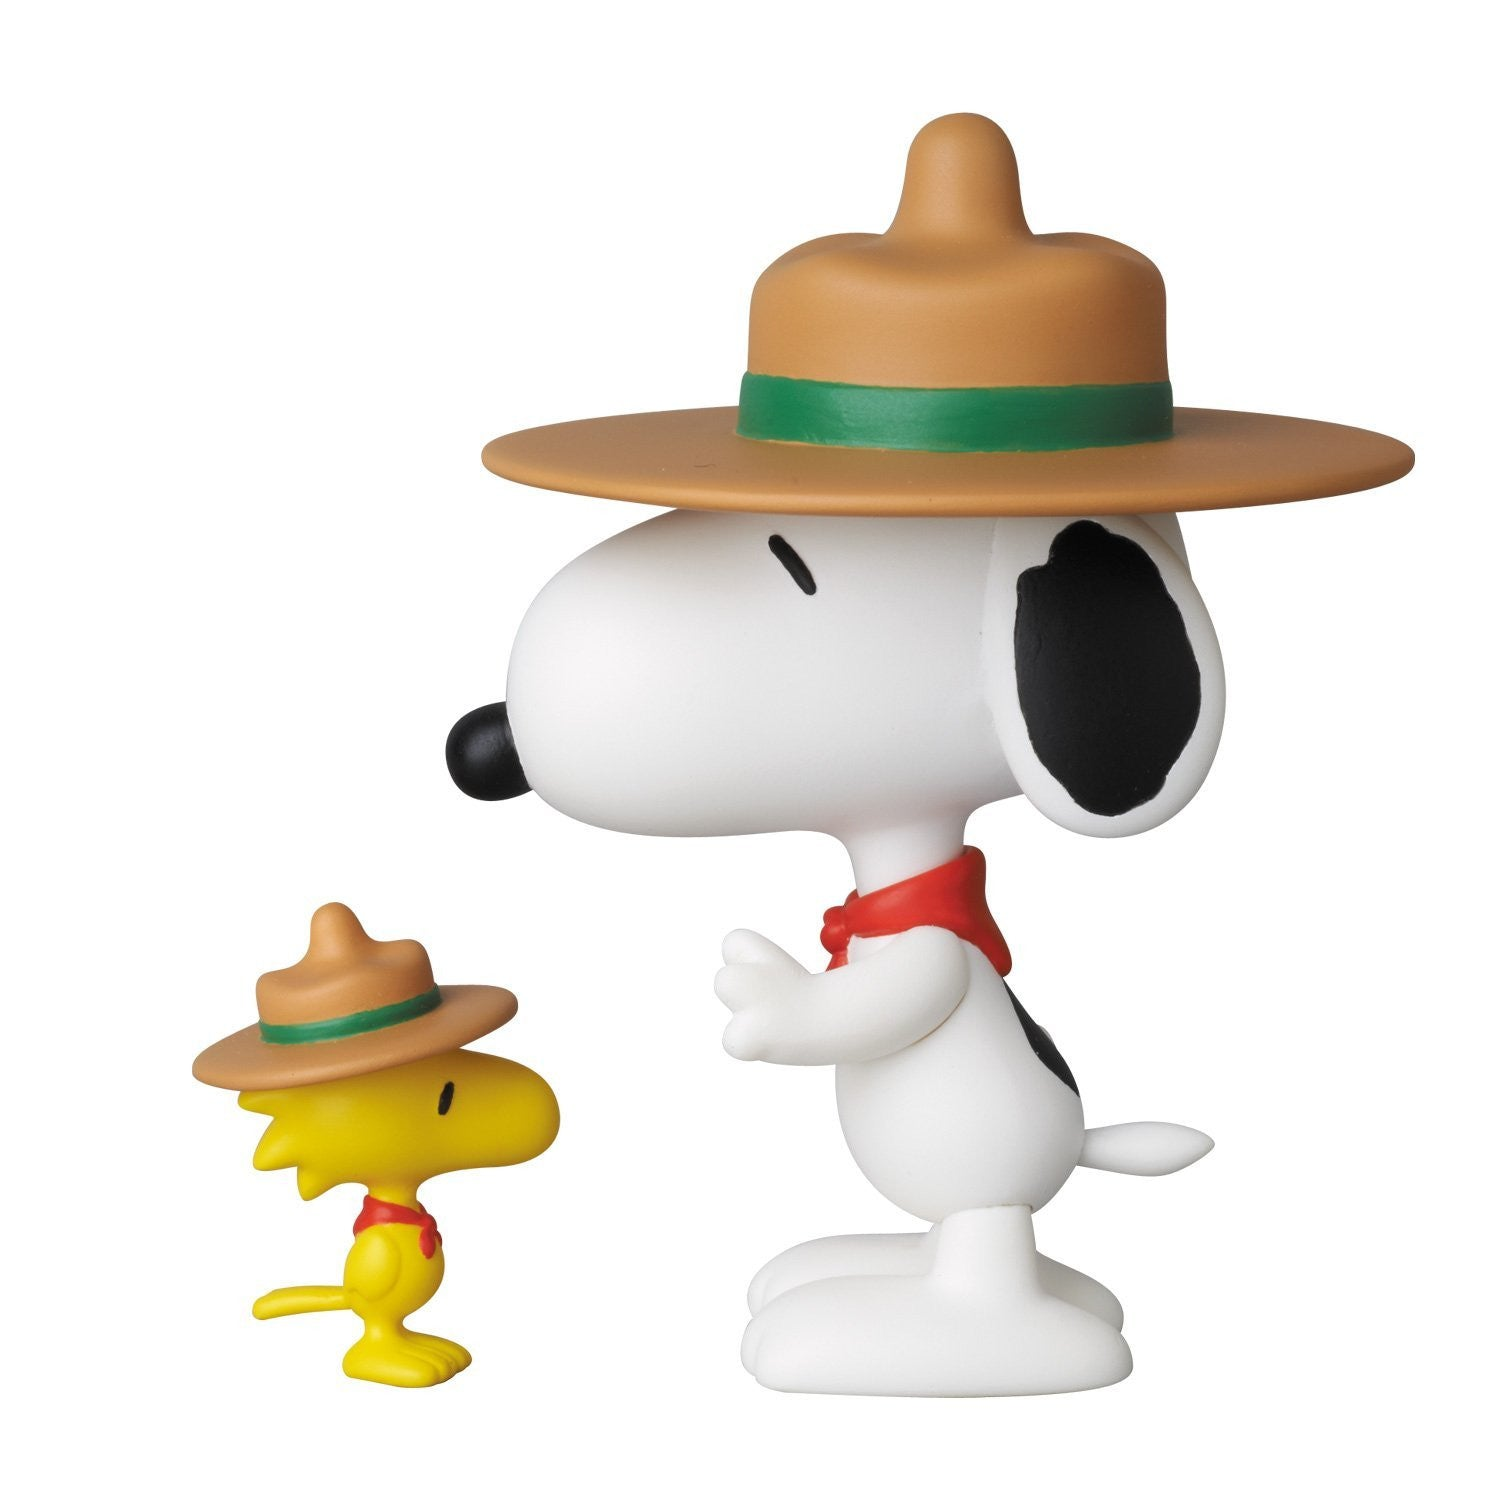 Beagle Scouts Snoopy and Woodstock Ultra Detailed Figure by Medicom Toy Corporation -Medicom - India - www.superherotoystore.com